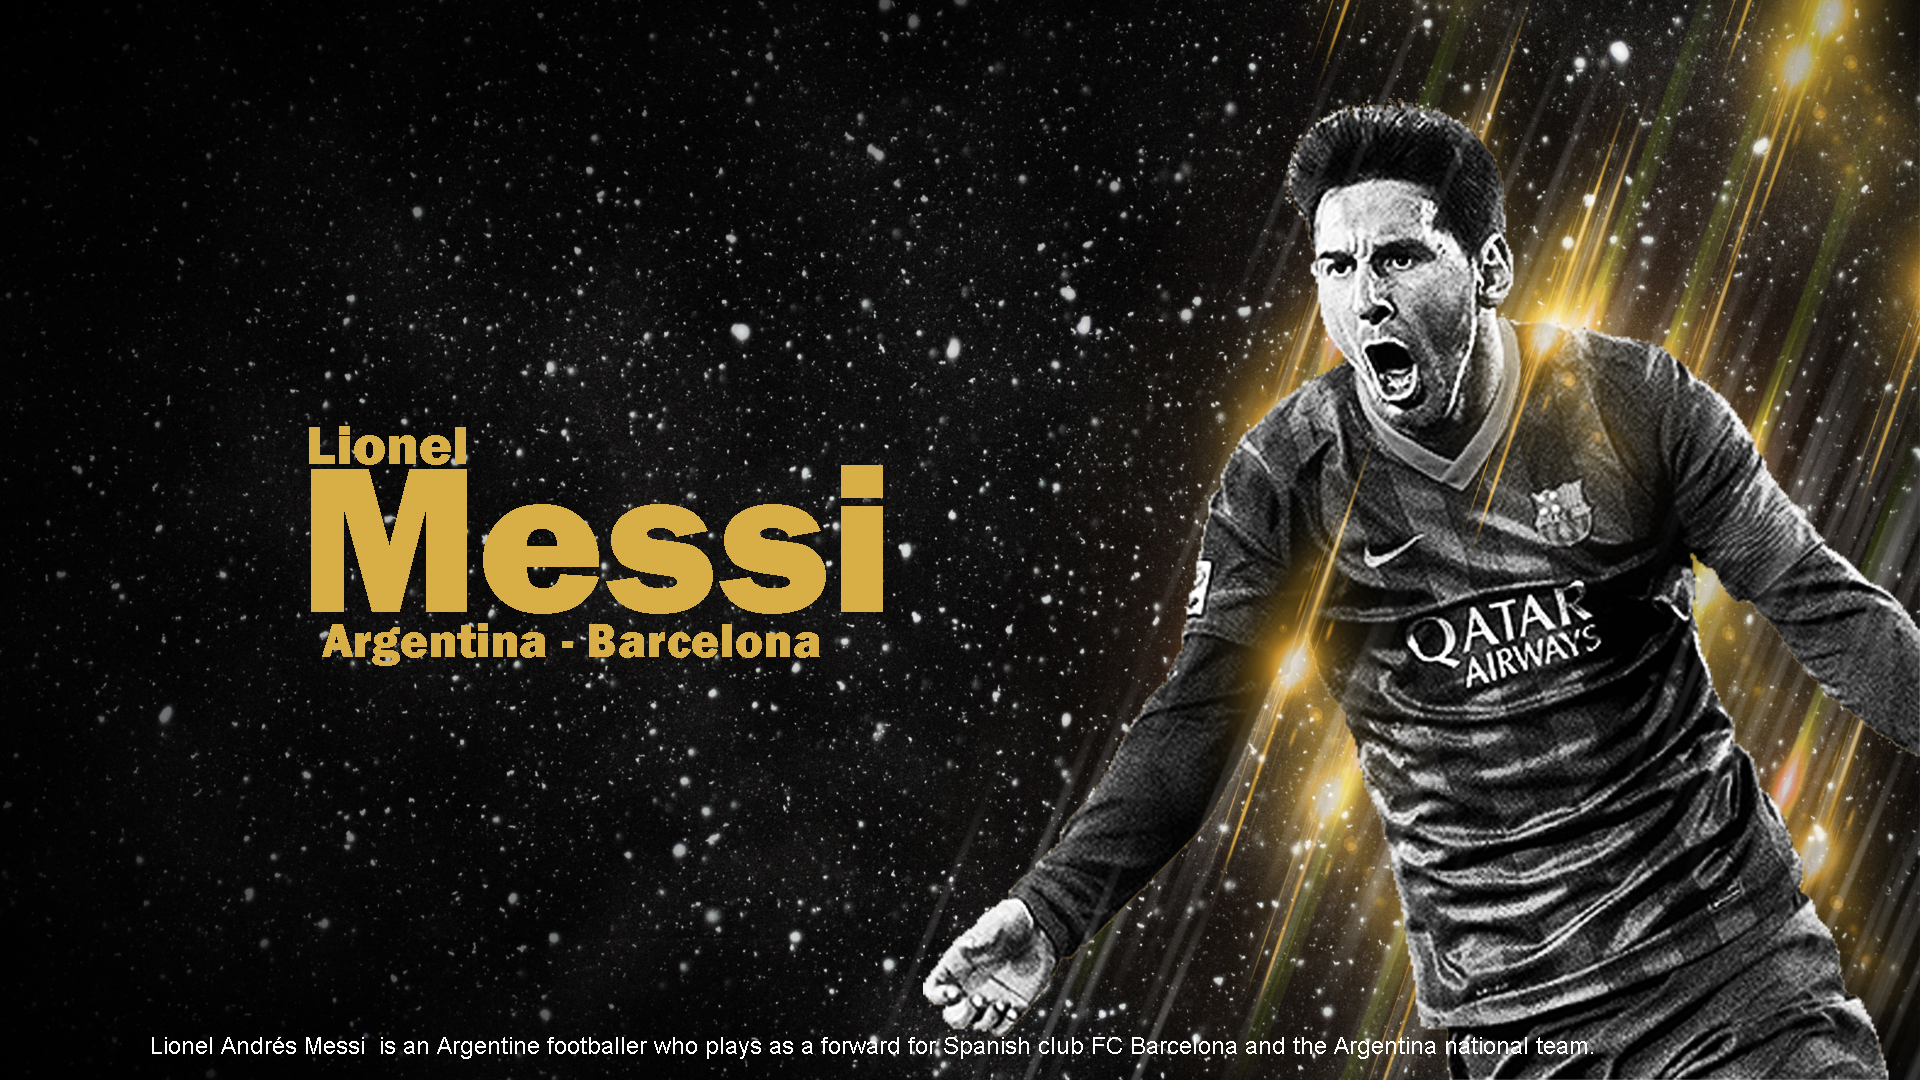 messi wallpaper 1920x1080 41911